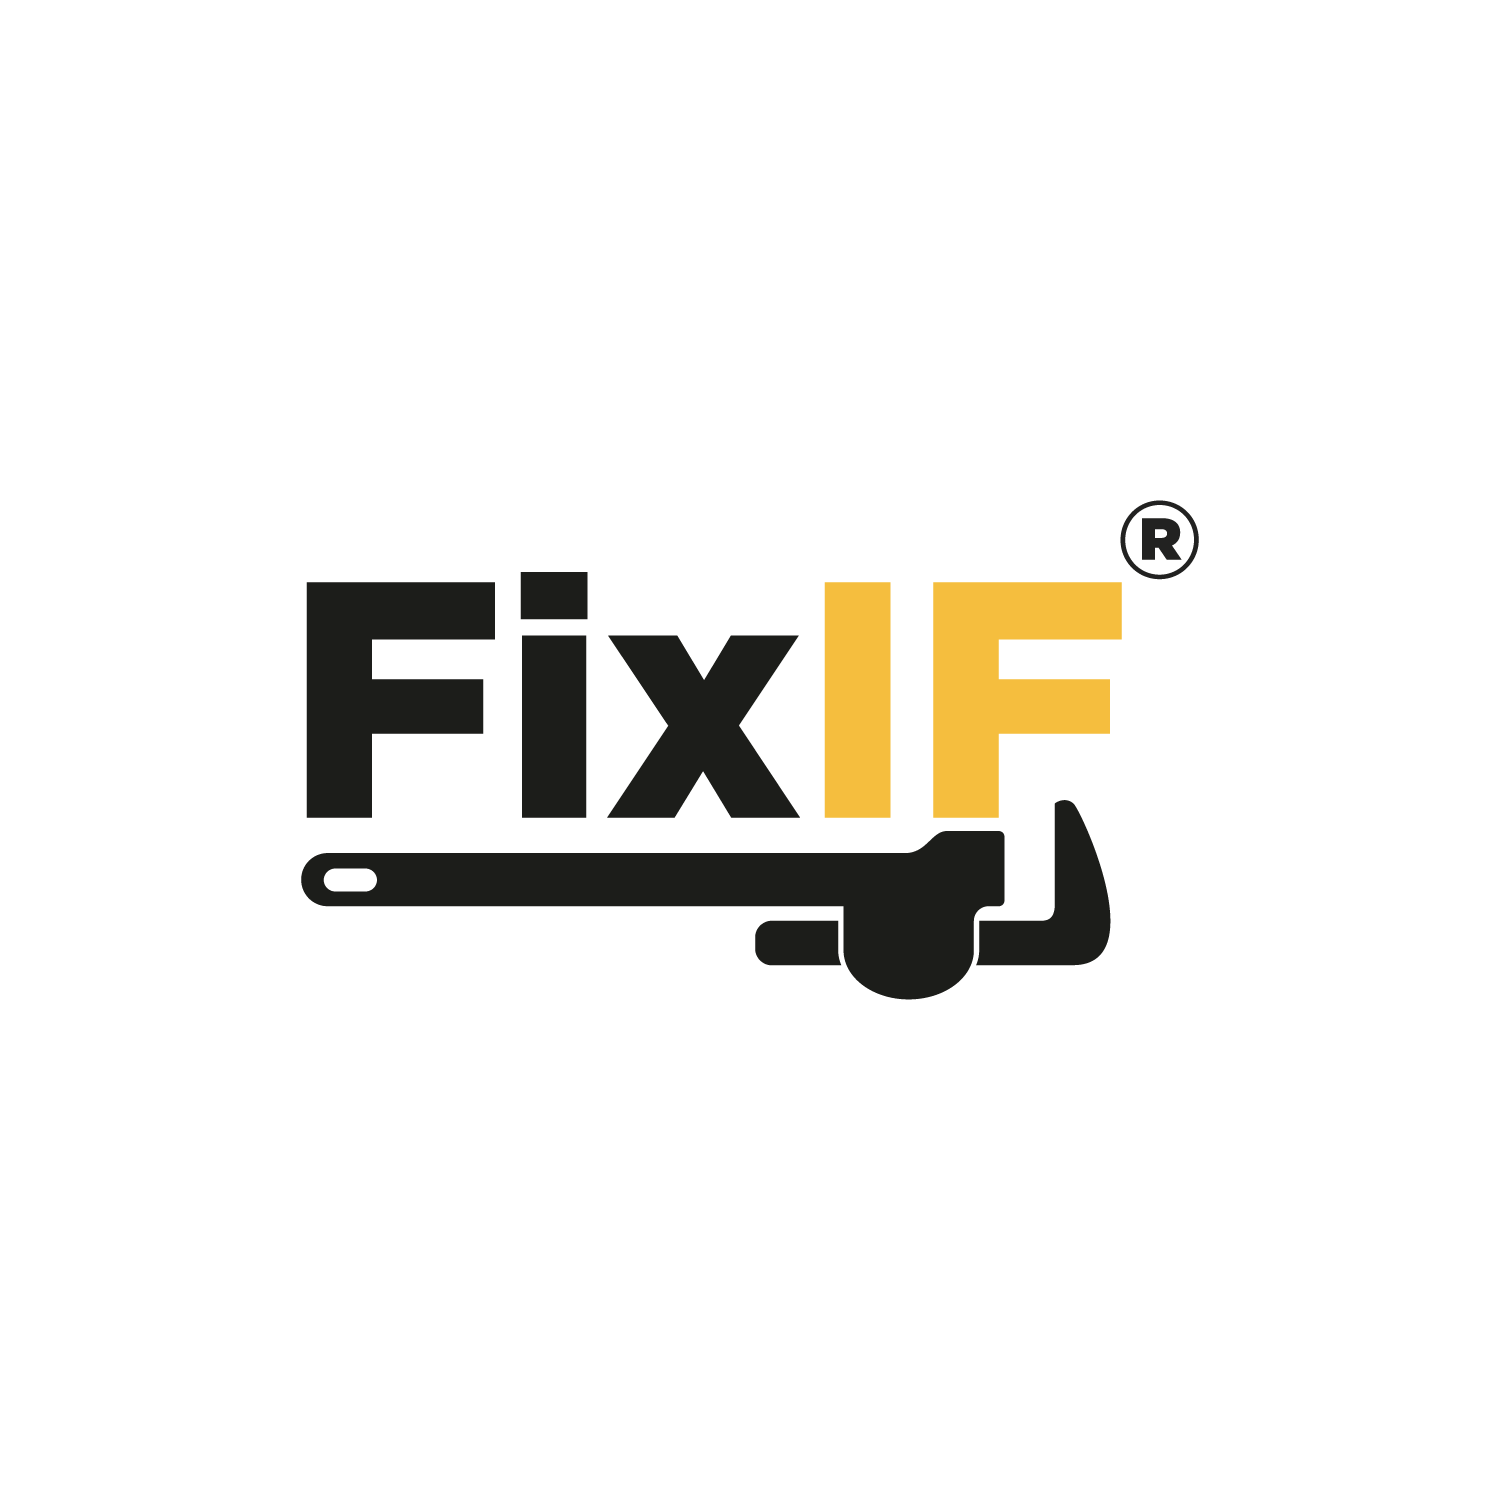 FixIF Emergency Plumber in Westley Waterless